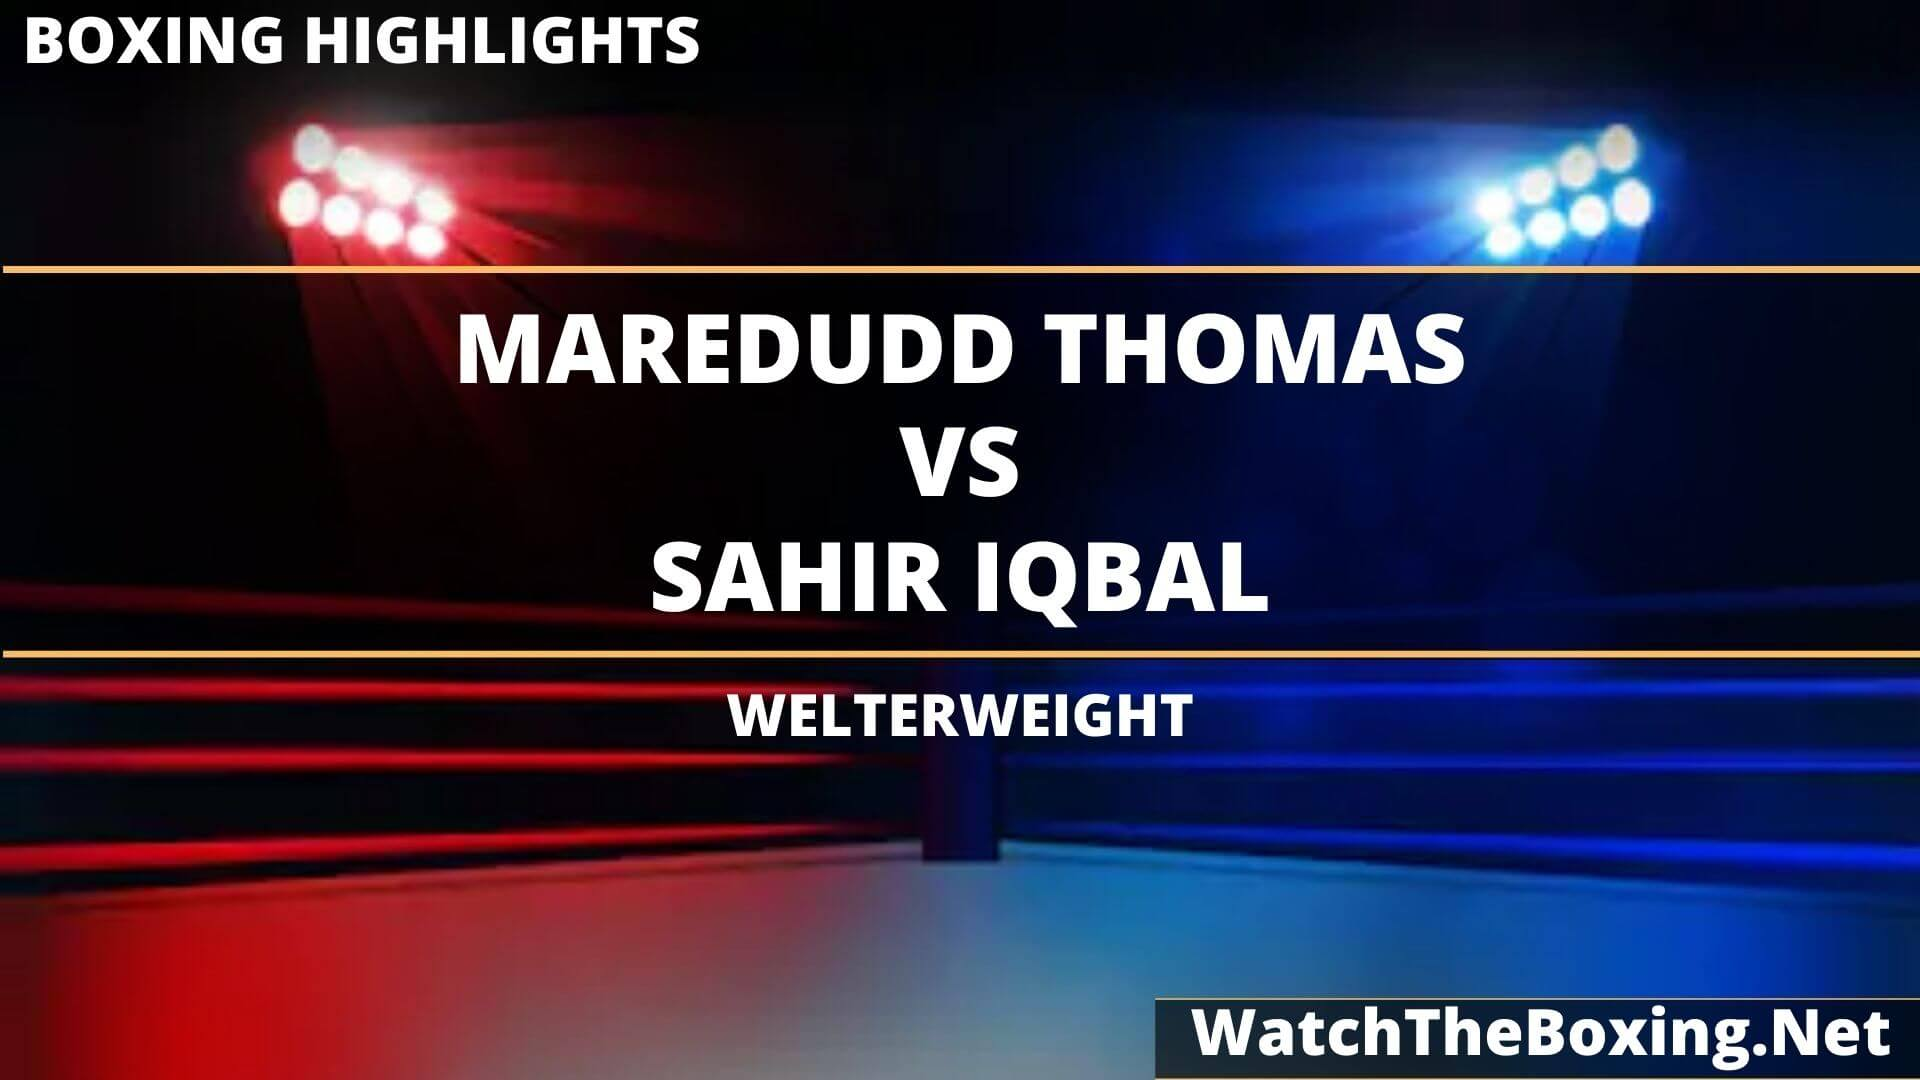 Maredudd Thomas Vs Sahir Iqbal Highlights 2020 Welterweight